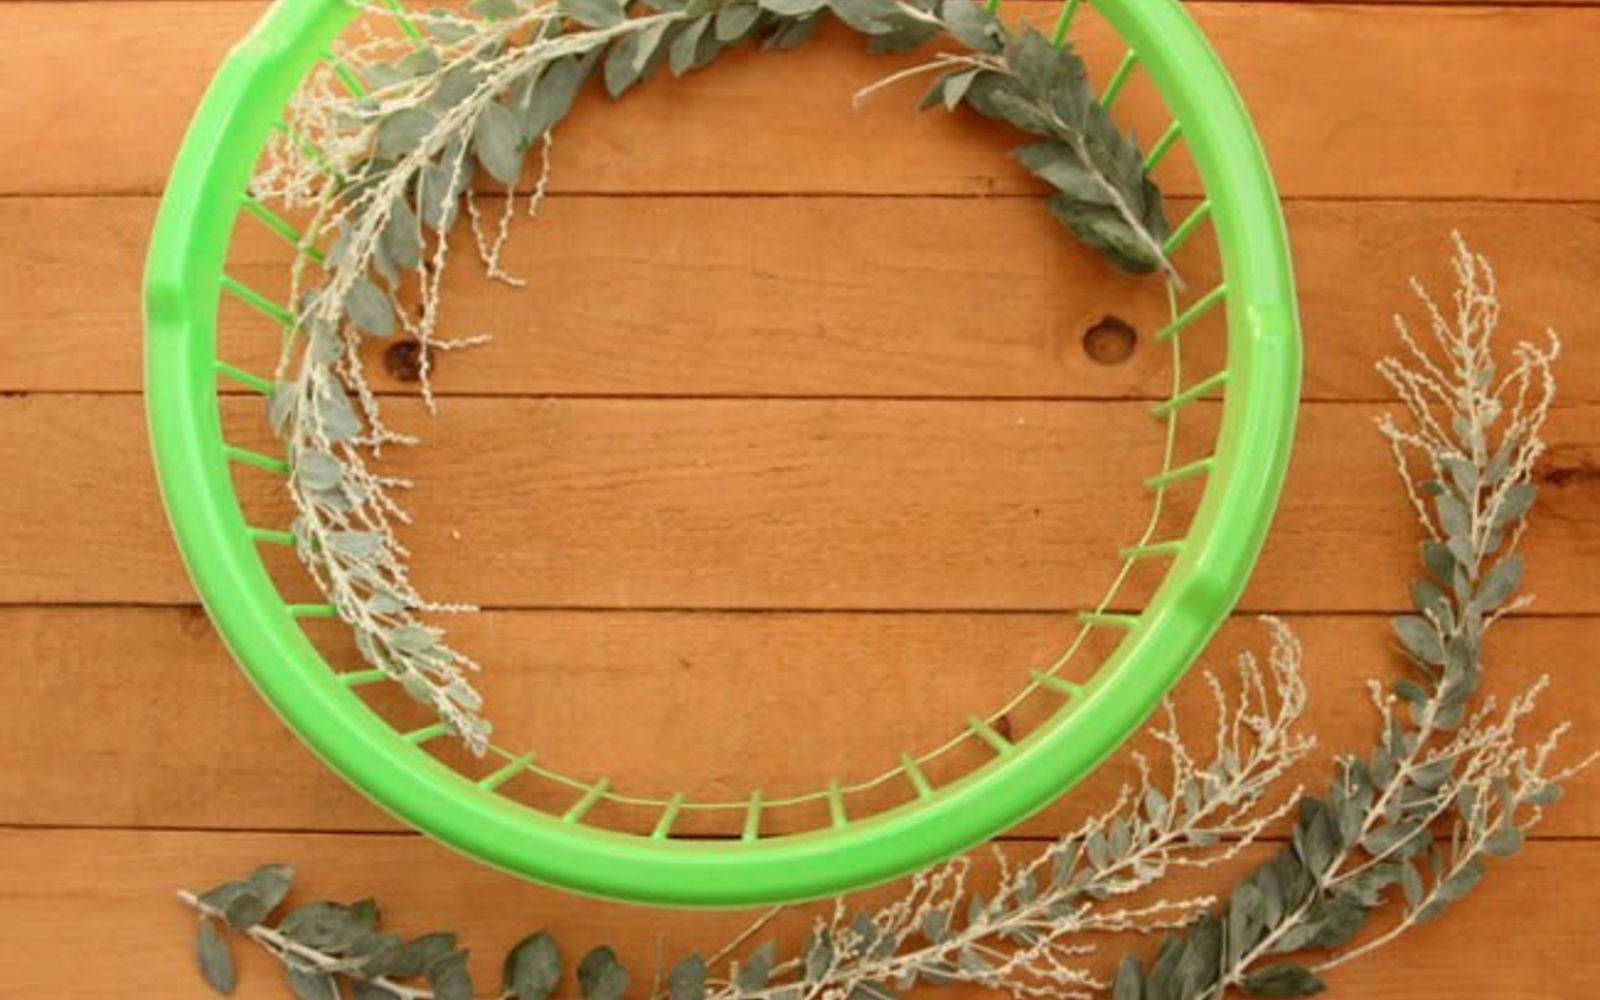 s 14 hidden home decor gems you can find in any dollar store, home decor, repurposing upcycling, That flimsy basket makes the perfect wreath